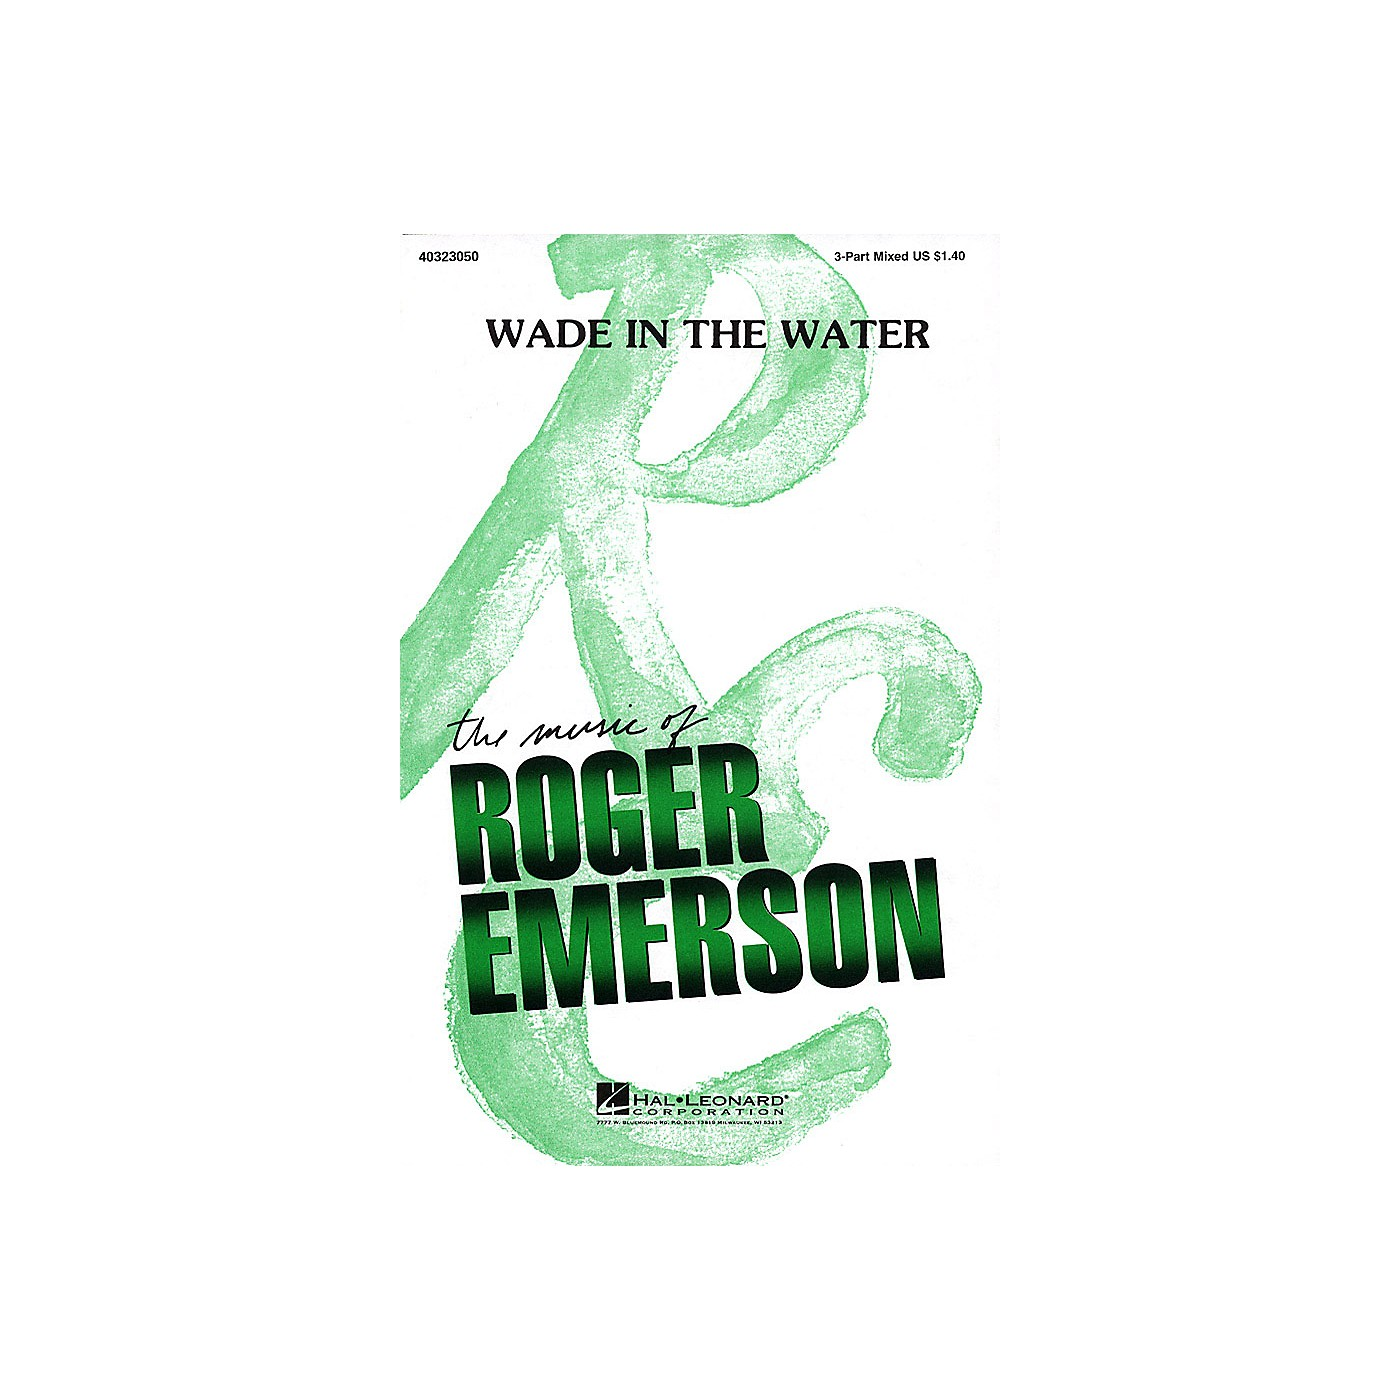 Hal Leonard Wade in the Water 3-Part Mixed arranged by Roger Emerson thumbnail